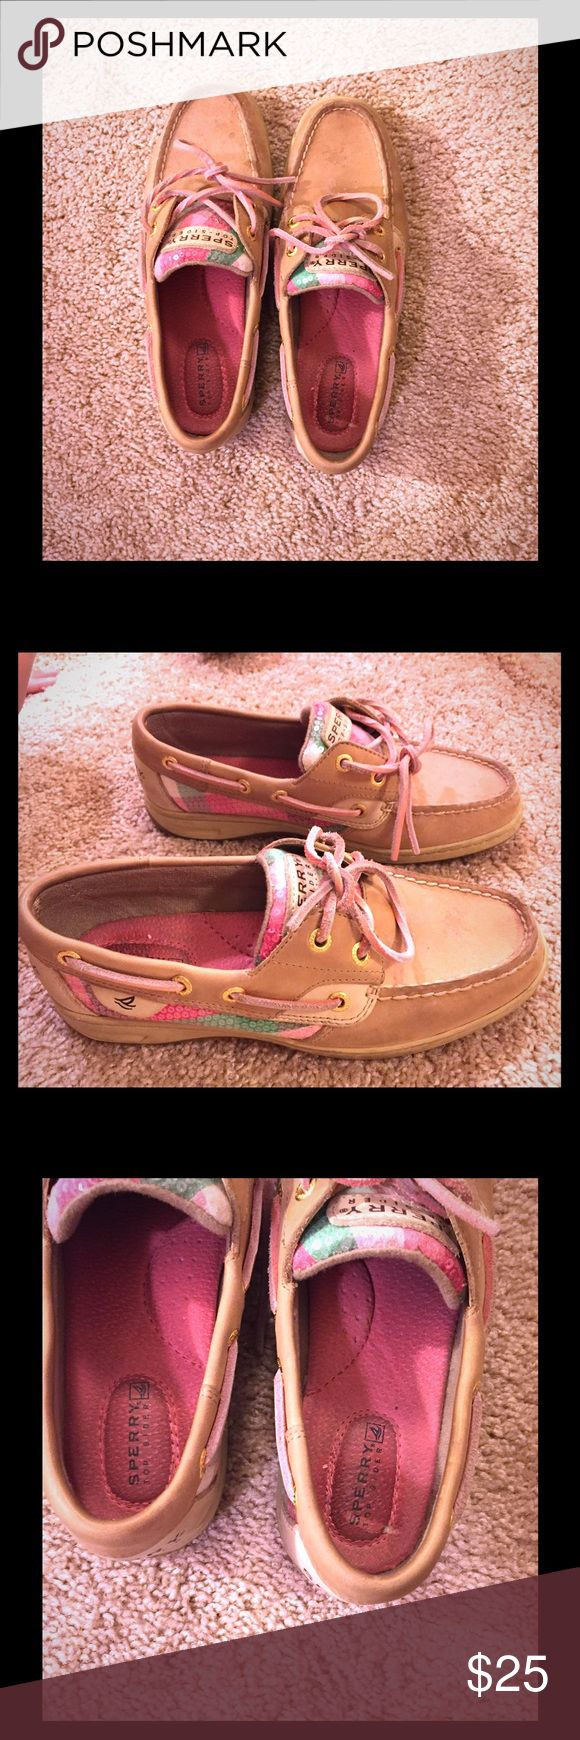 SALE ❣️❣️sperry shoe❣️❣️ ❣️❣️pre-loved. Still in good condition 👍🏻❣️❣️💋 Sperry Top-Sider Shoes Flats & Loafers